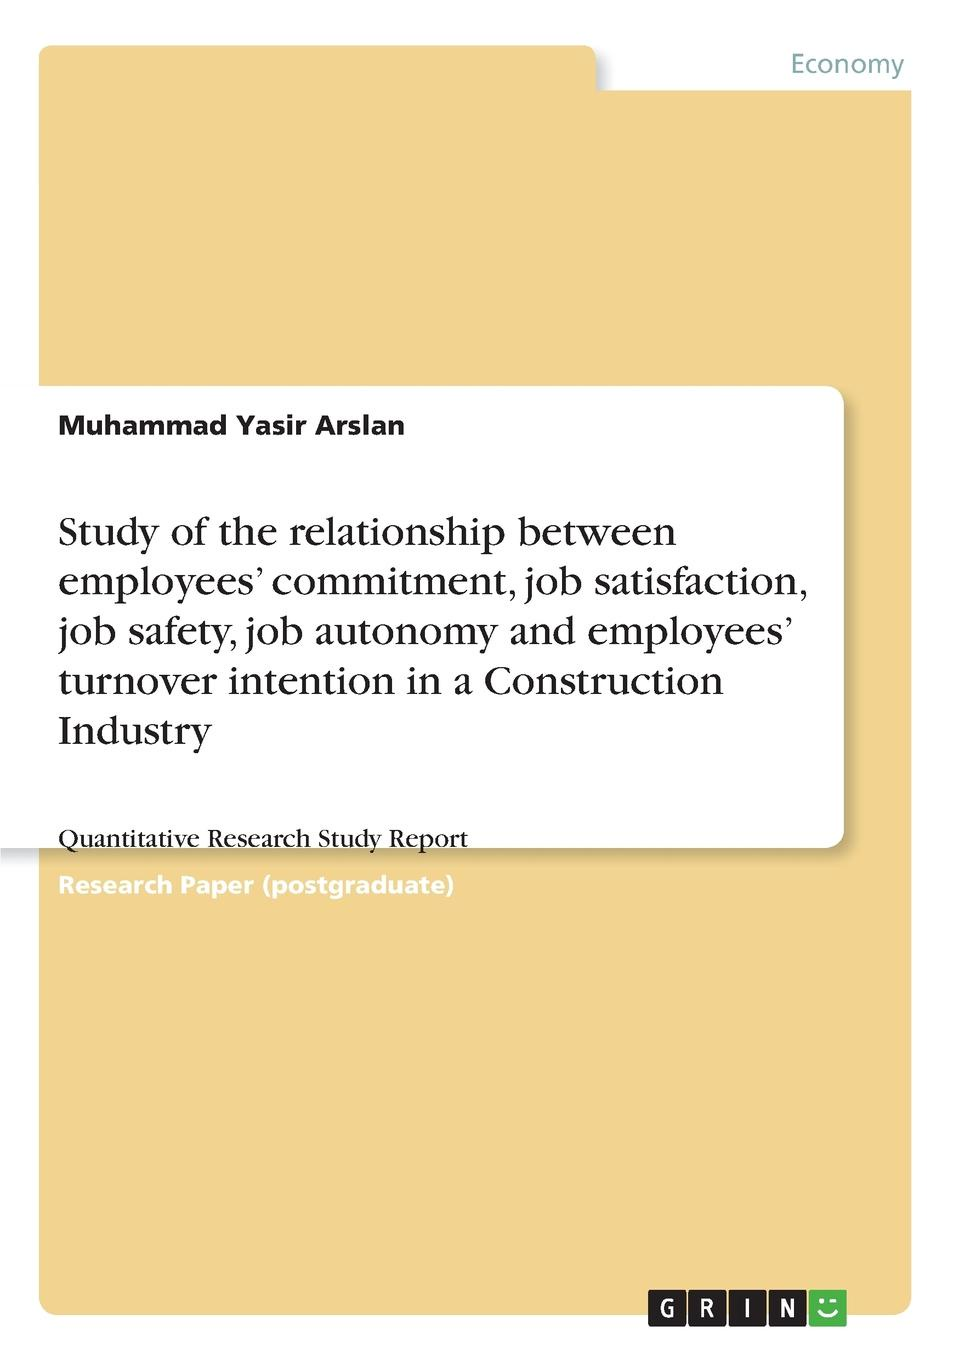 Muhammad Yasir Arslan Study of the relationship between employees. commitment, job satisfaction, job safety, job autonomy and employees. turnover intention in a Construction Industry occupational stress and job satisfaction in a public enterprise